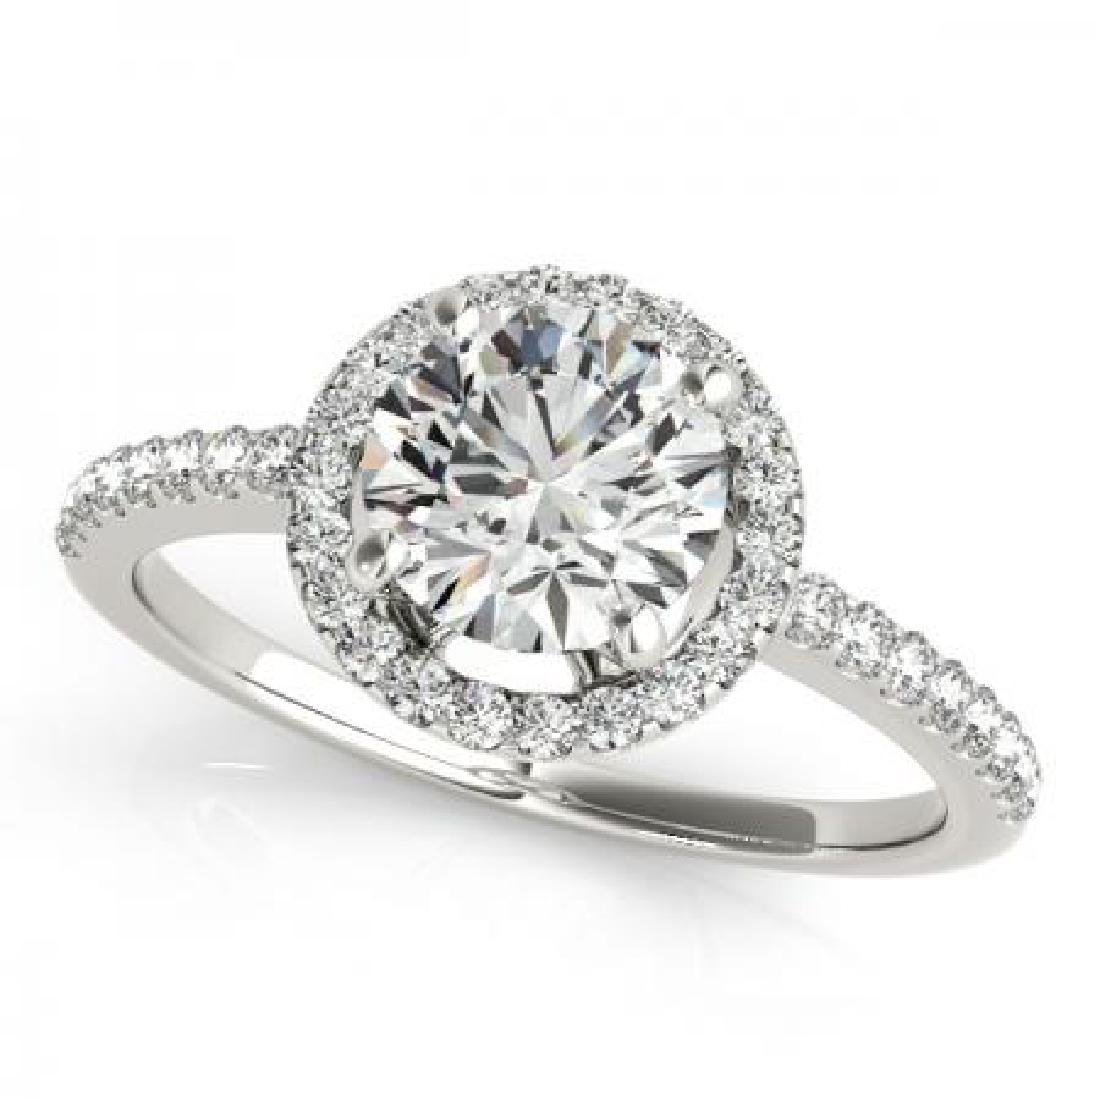 CERTIFIED PLATINUM 1.58 CT G-H/VS-SI1 DIAMOND HALO ENGA